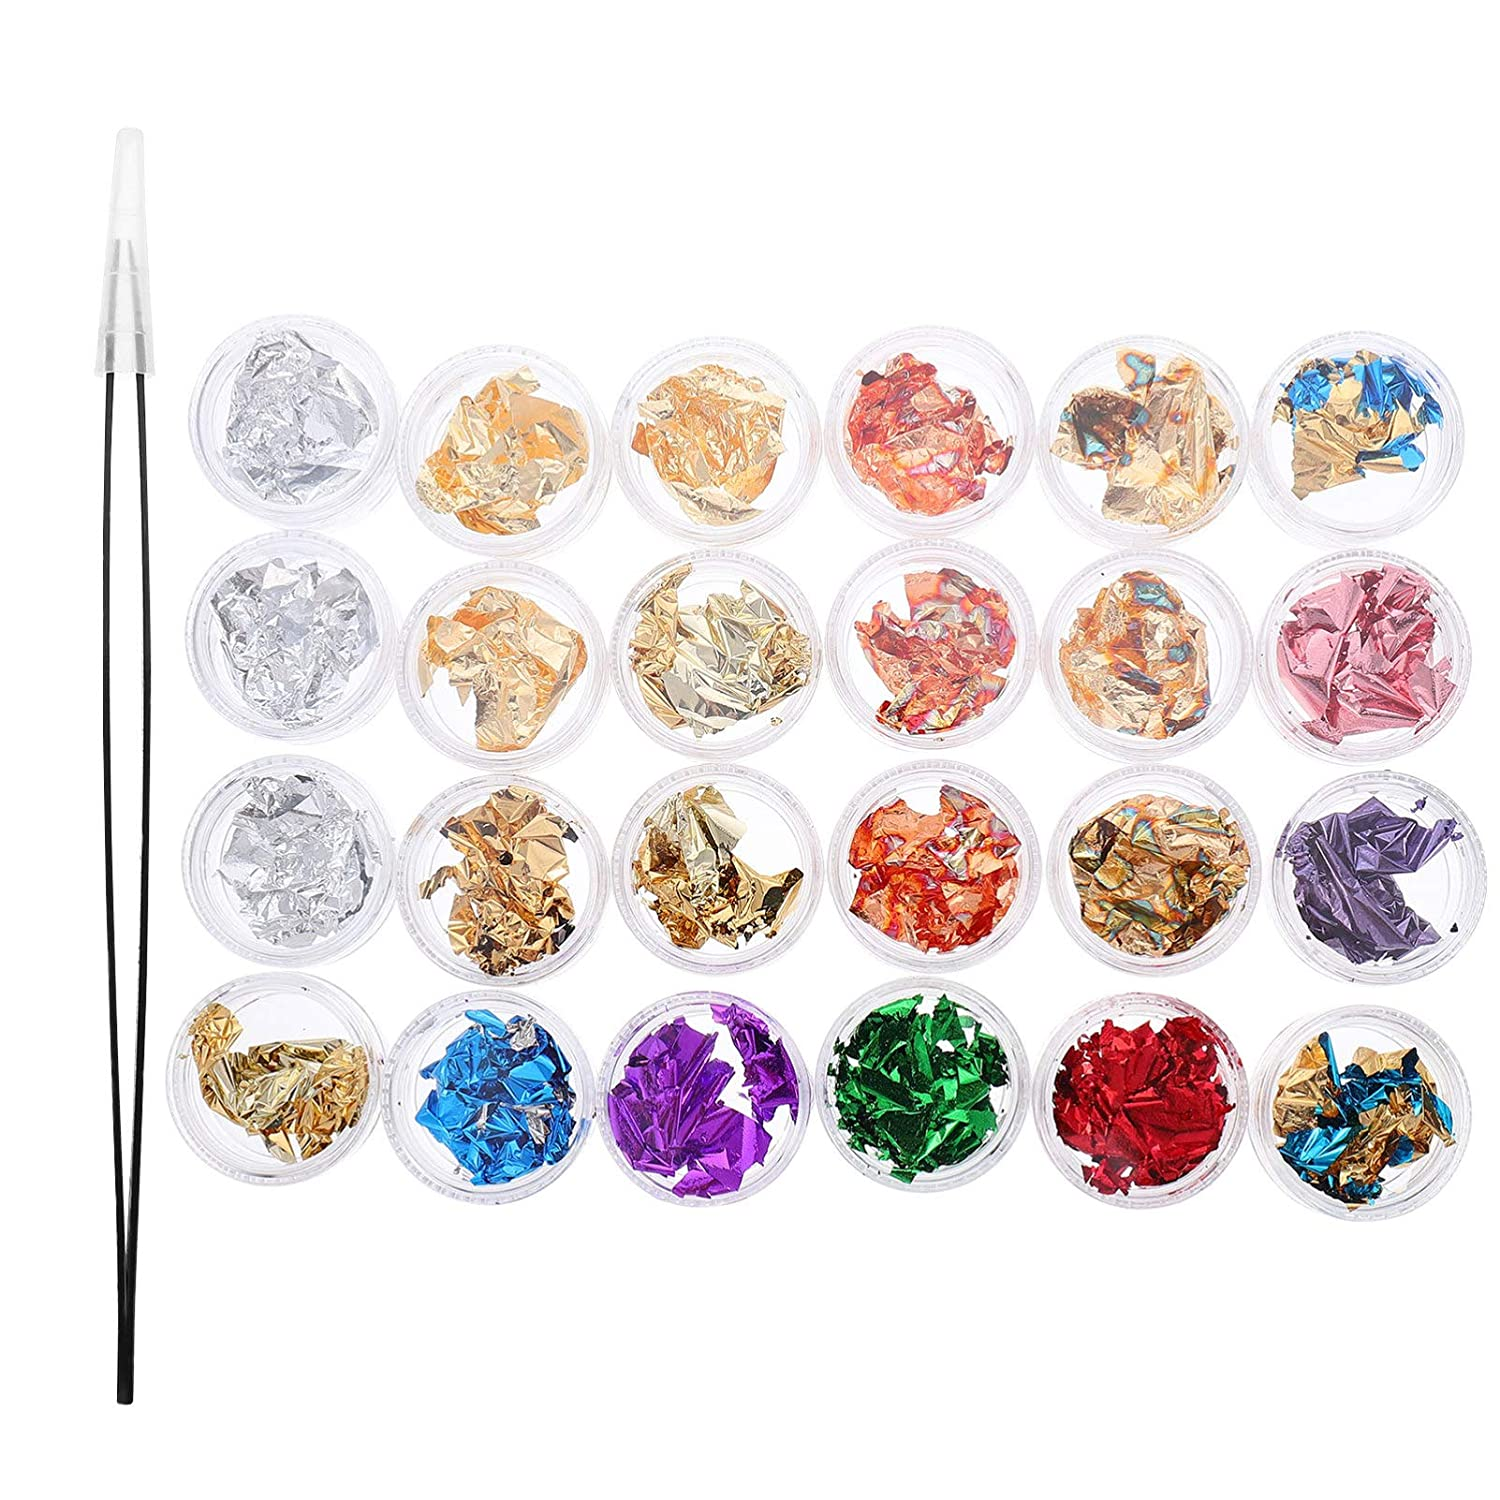 EXCEART 3pcs Gold Silver Nail Foil Flakes Mixed Color Imitation Gold Foil Genuine Copper Metallic Foil Flakes Gold Foil Flakes for Resin, Jewelry Making,Arts Projects